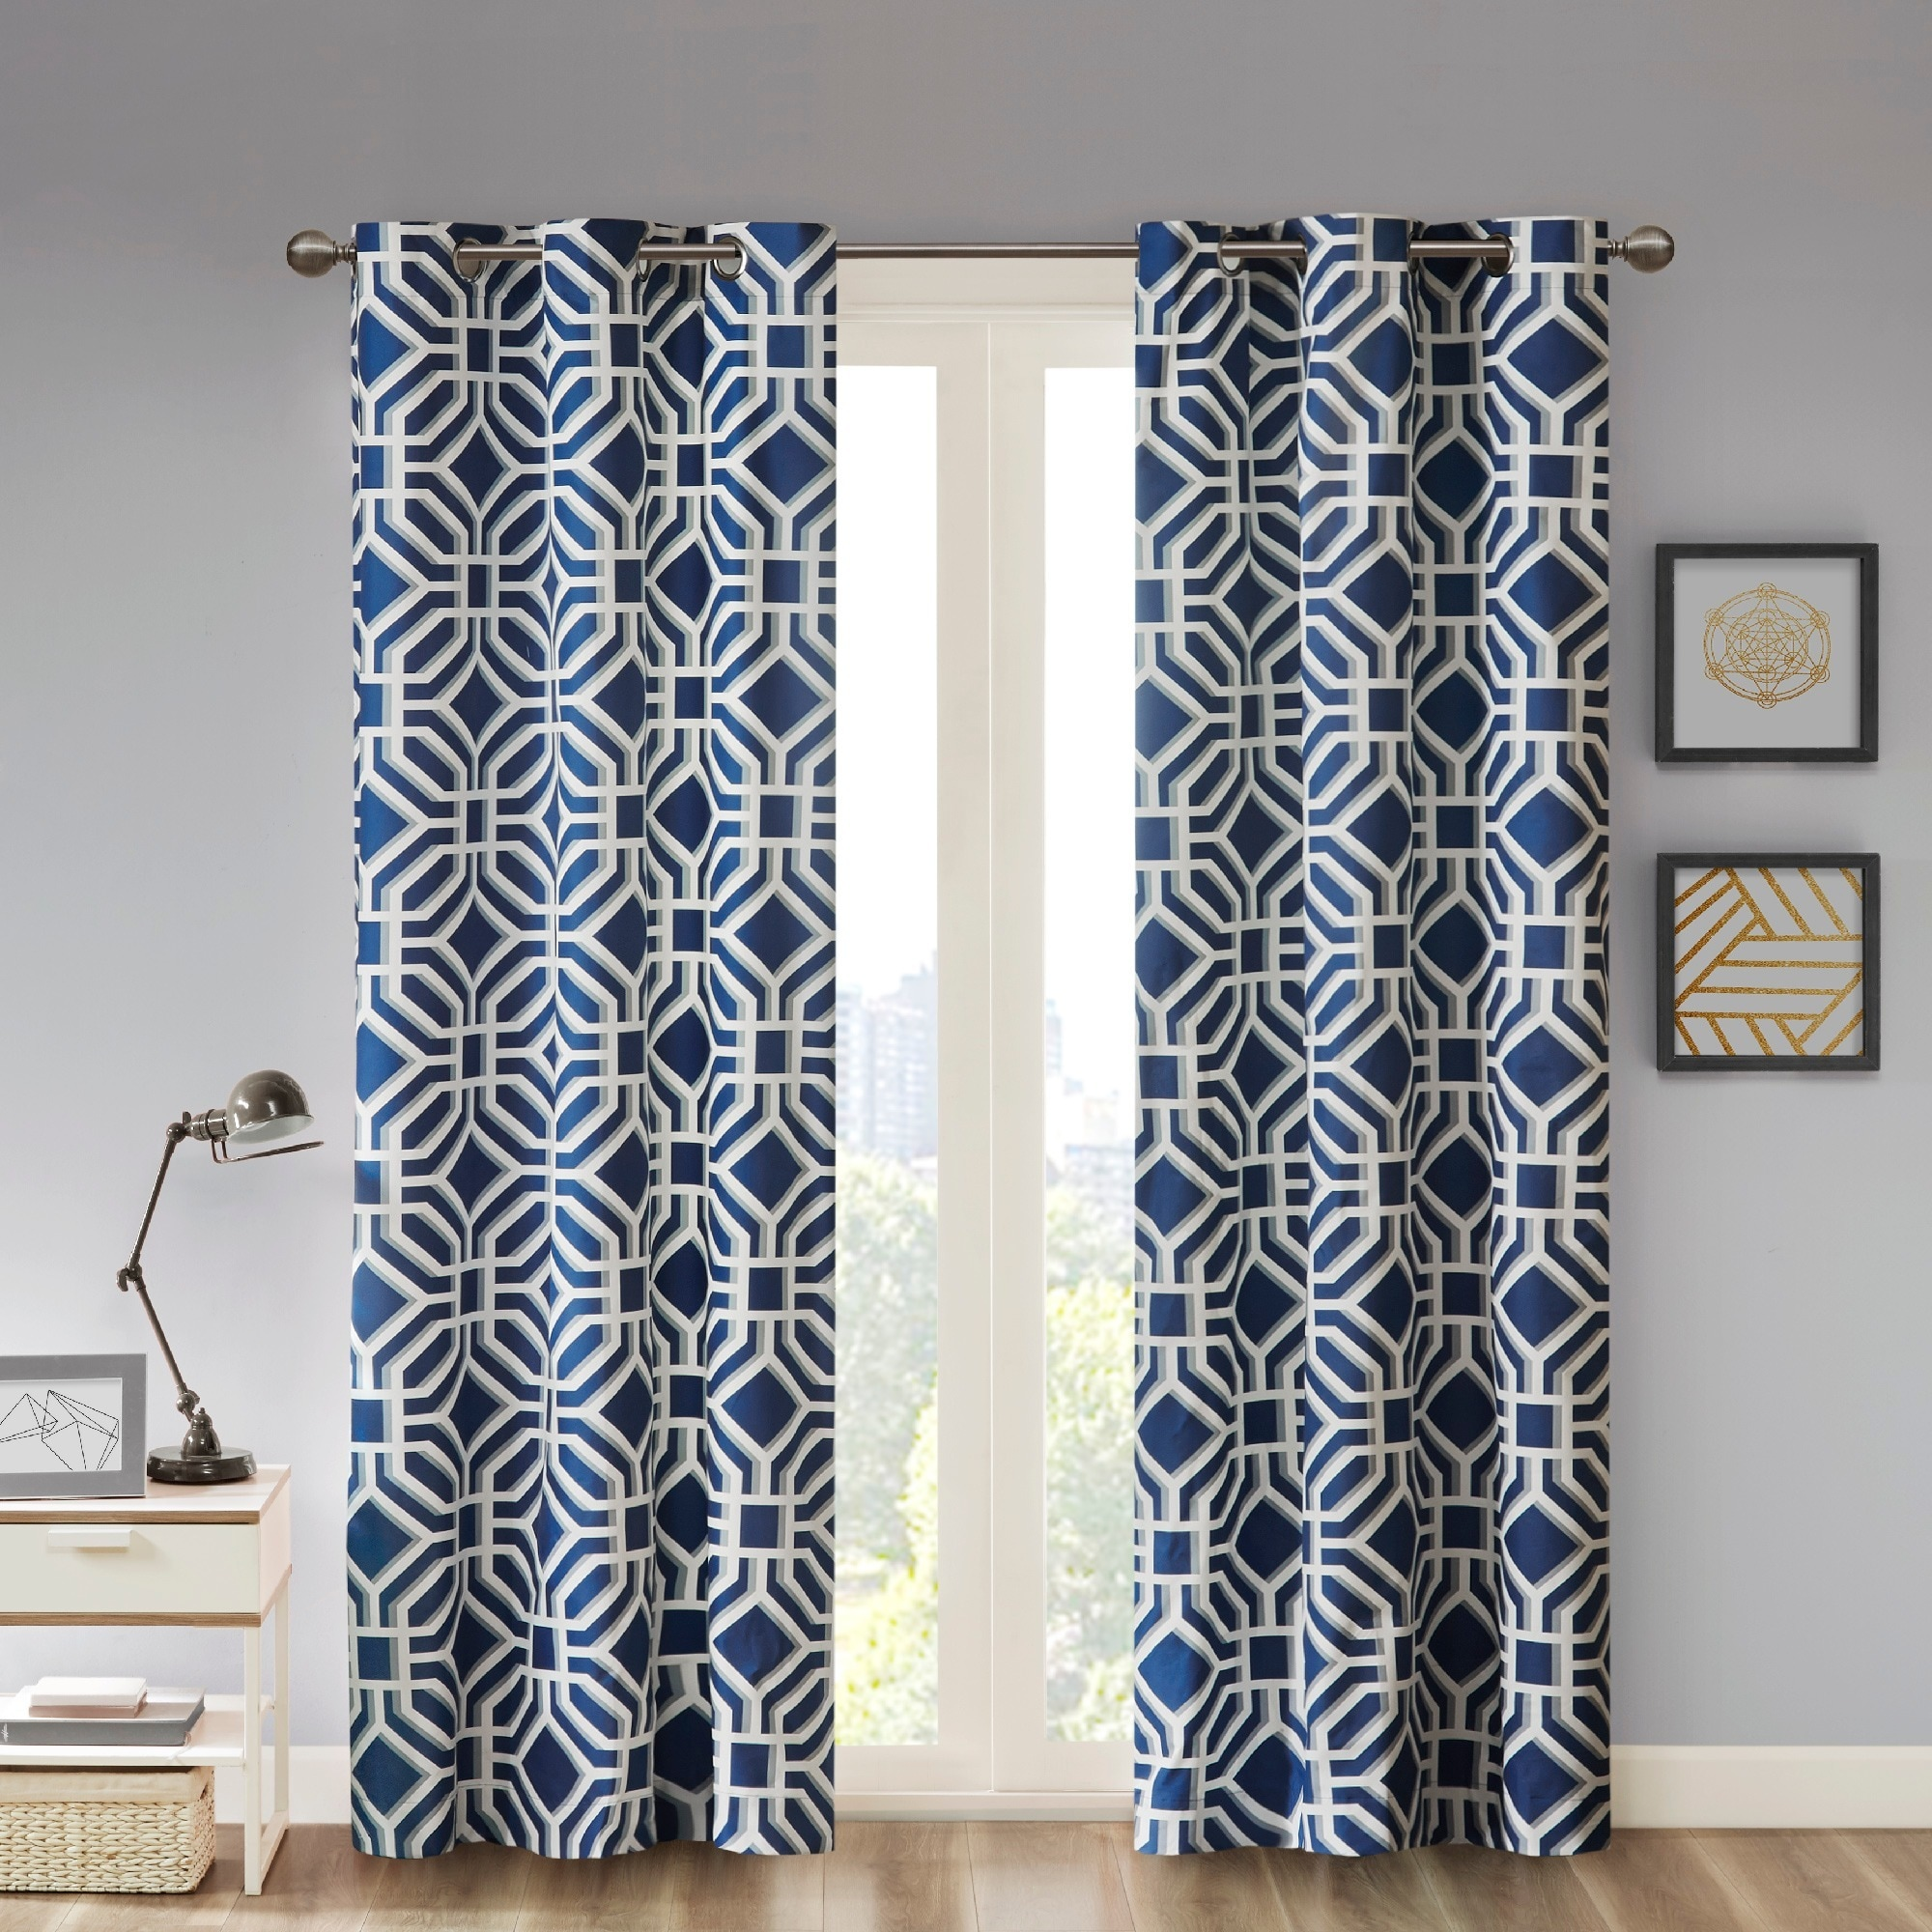 curtain treatments and door inch window room blue buy rod grommet shocking picture panels size curtains white full black grey modern of for gold rods